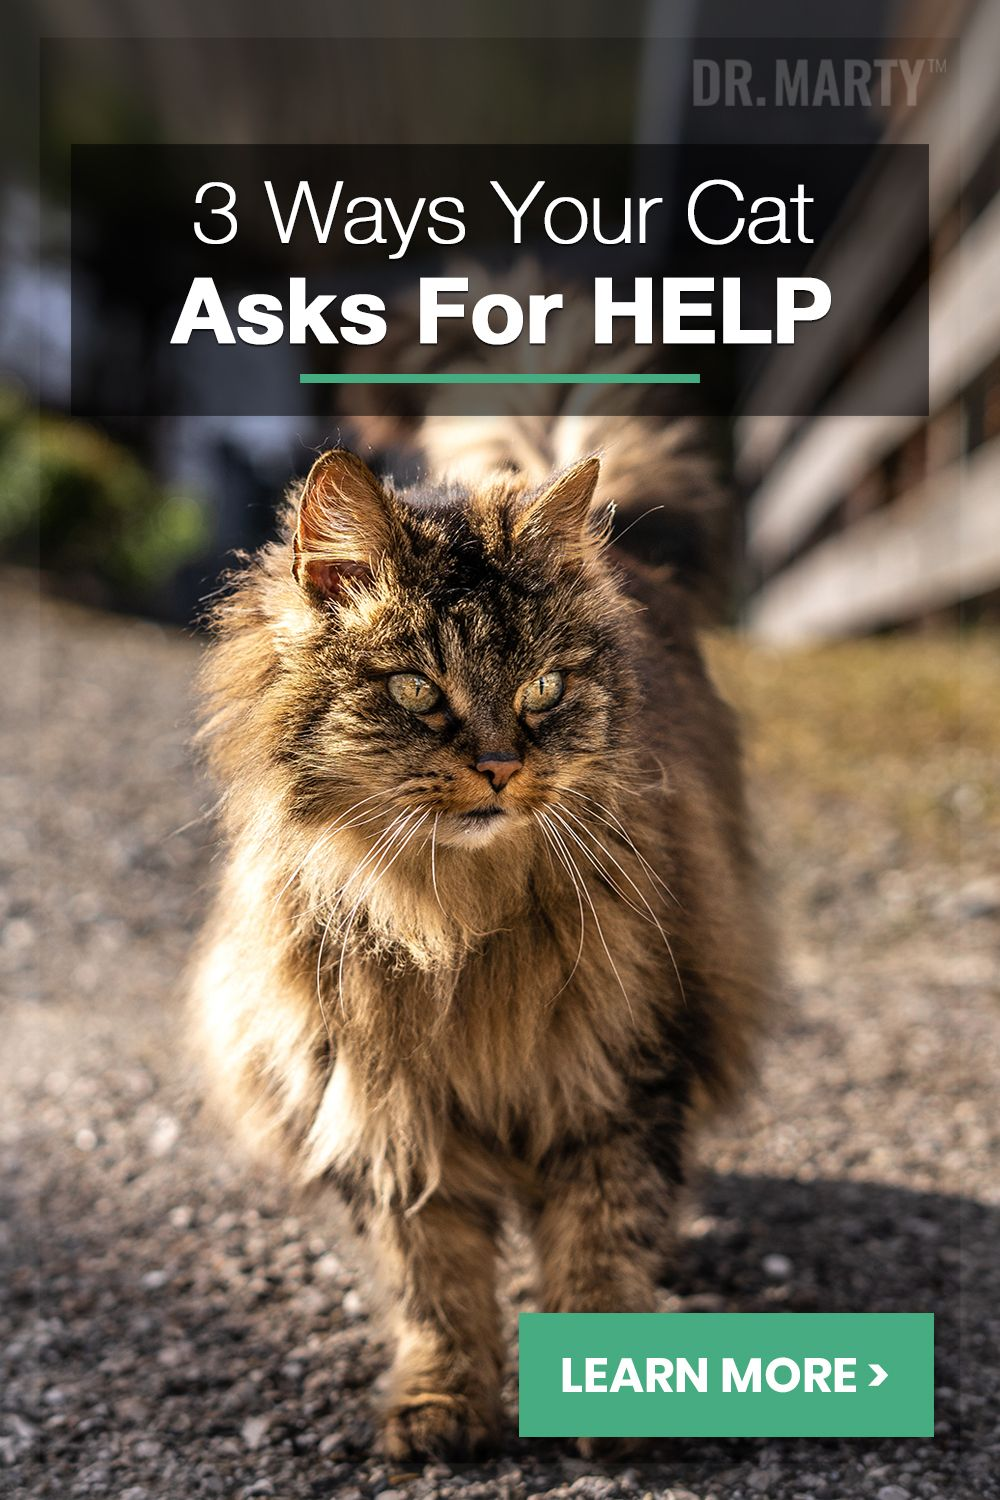 3 Ways Your Cat Asks For Help Cats Cute Cats And Kittens Cuddly Animals